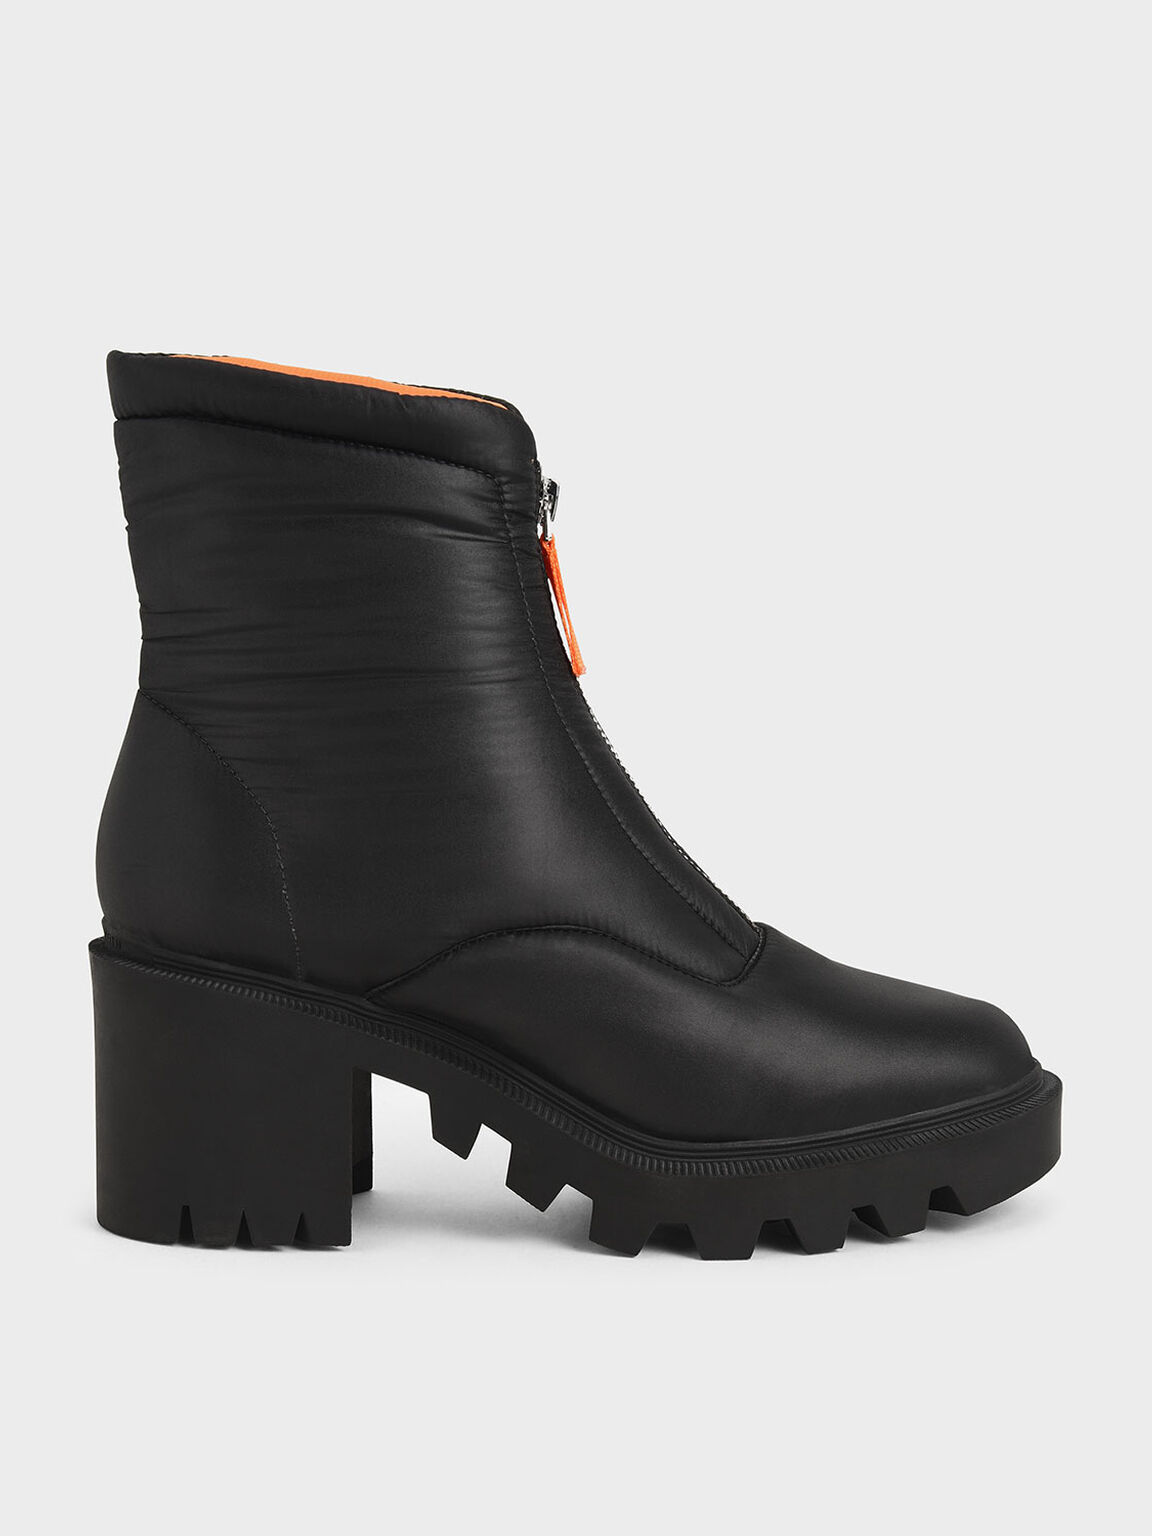 Nylon Front Zip Ankle Boots, Black, hi-res